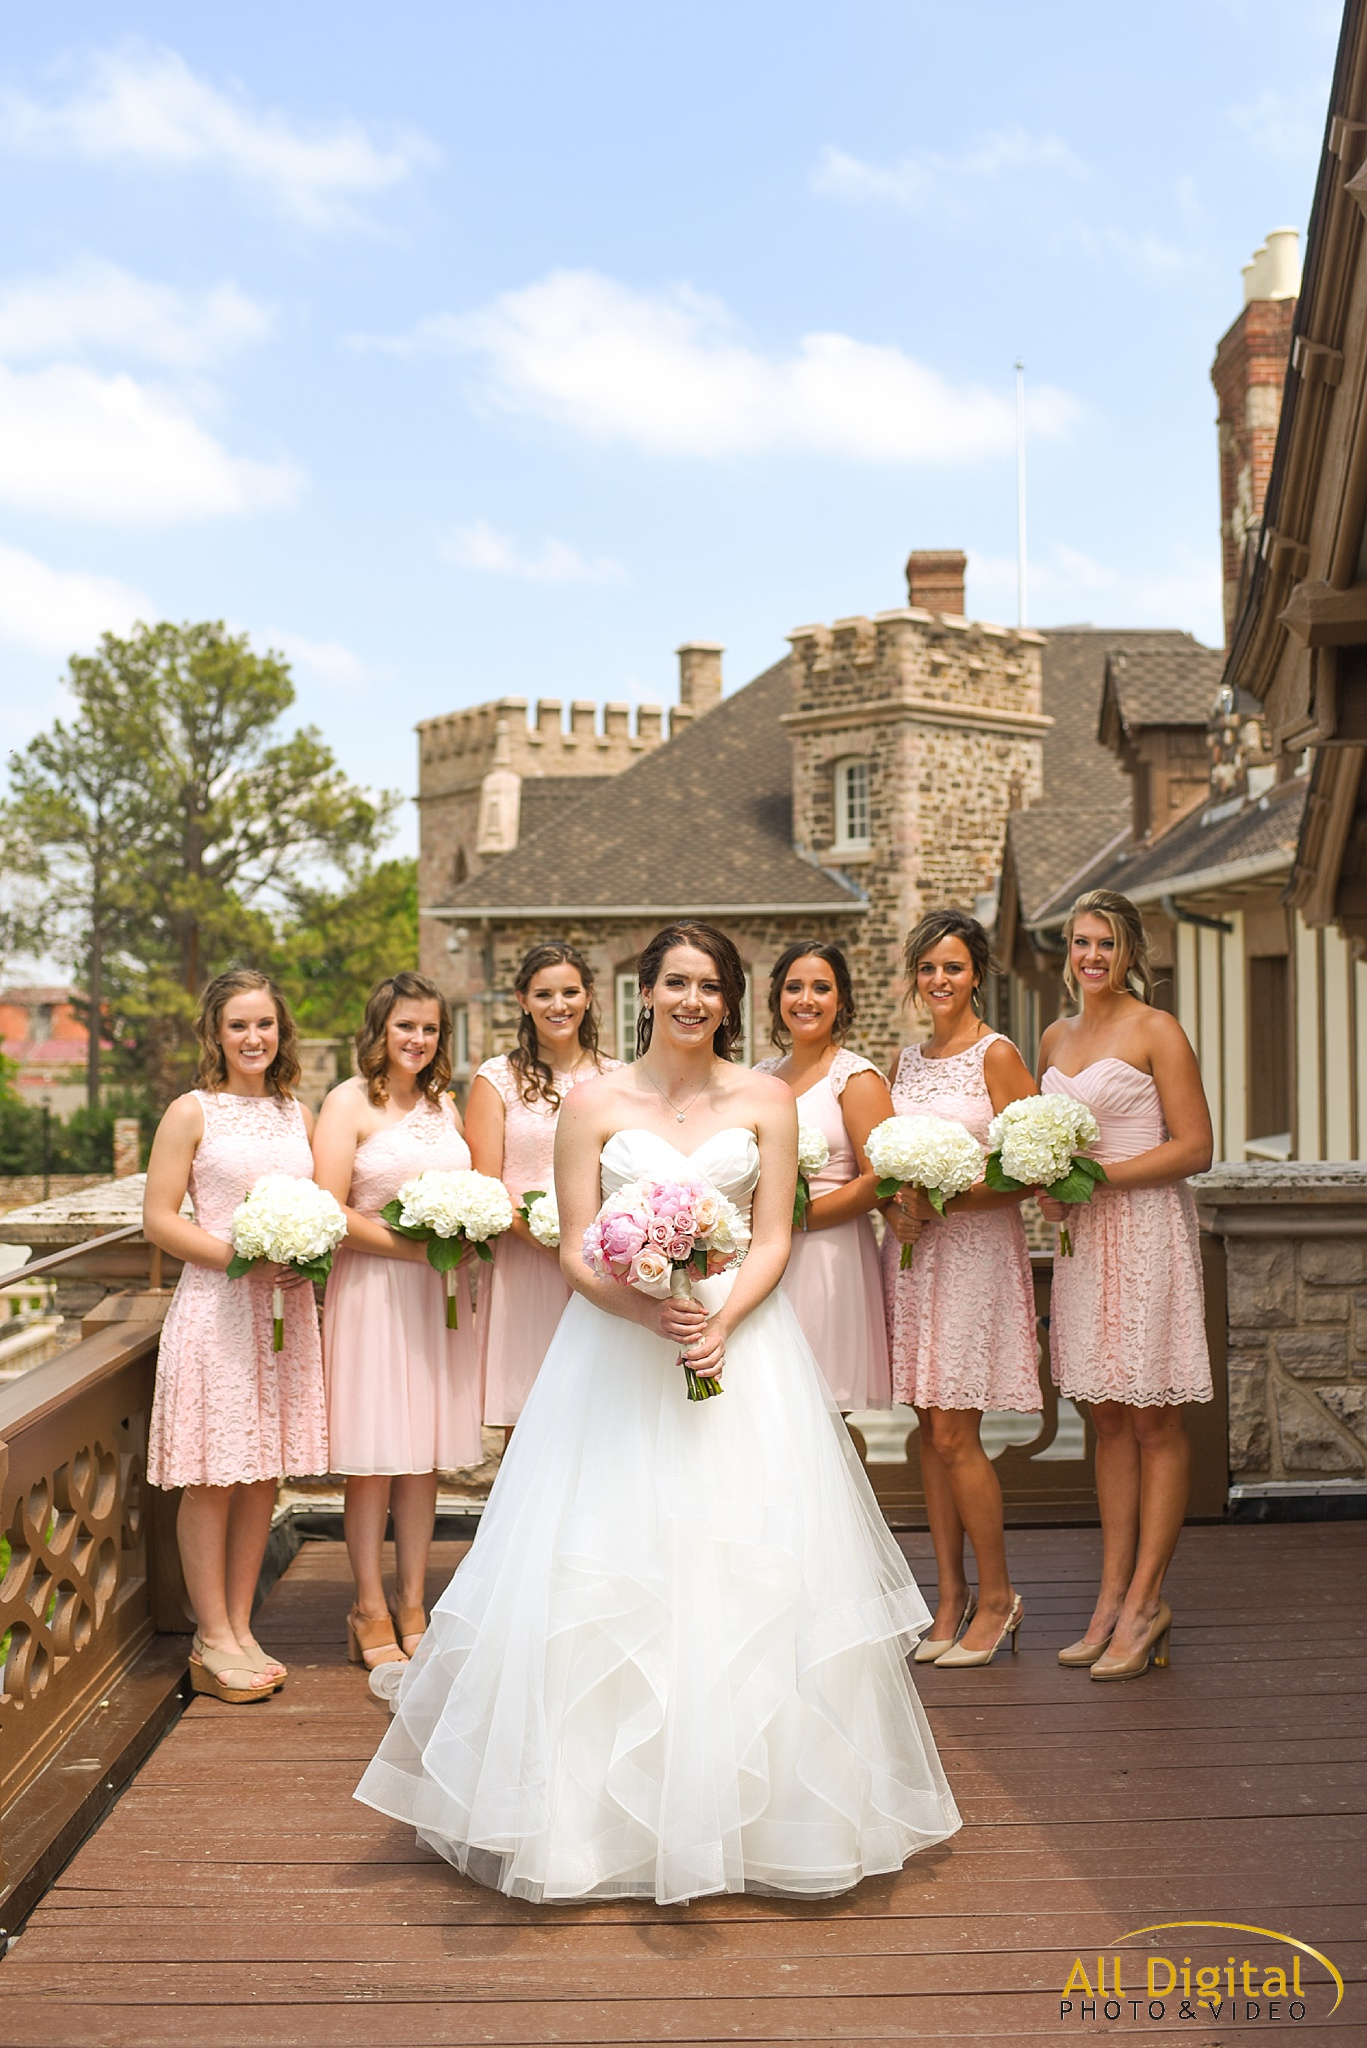 Bride & Bridesmaids Photos on the terrace of Highlands Ranch Mansion